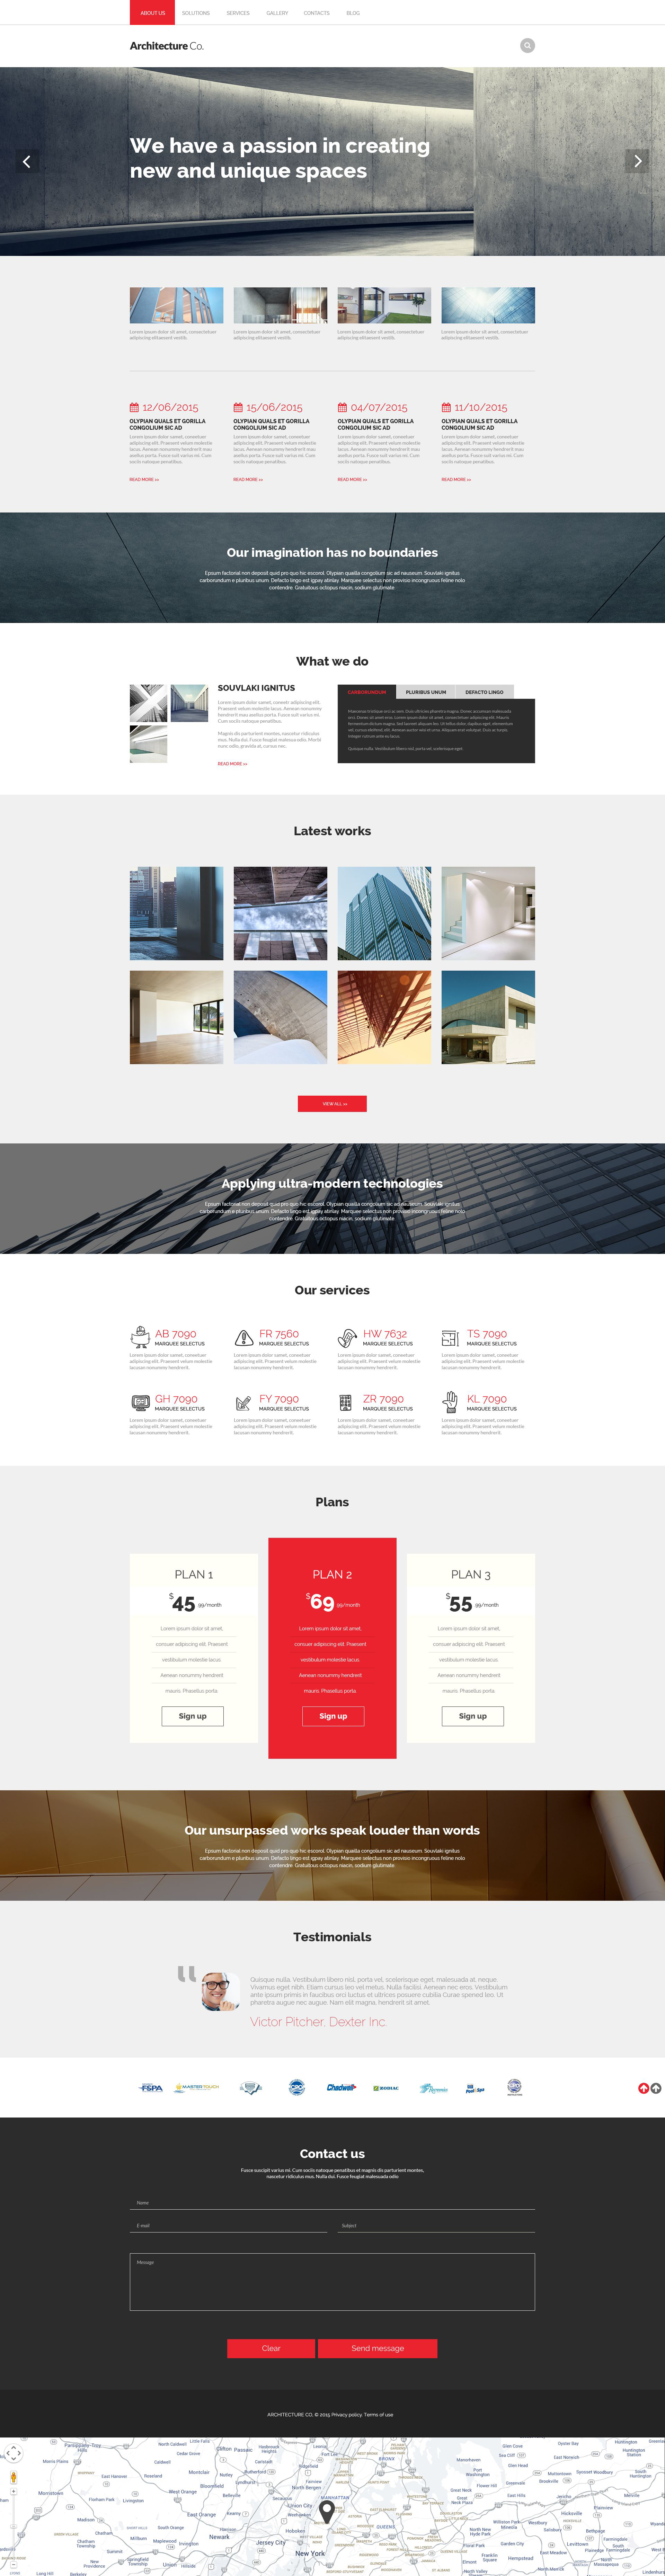 """Architectural Model"" Responsive Drupal Template №53817 - screenshot"